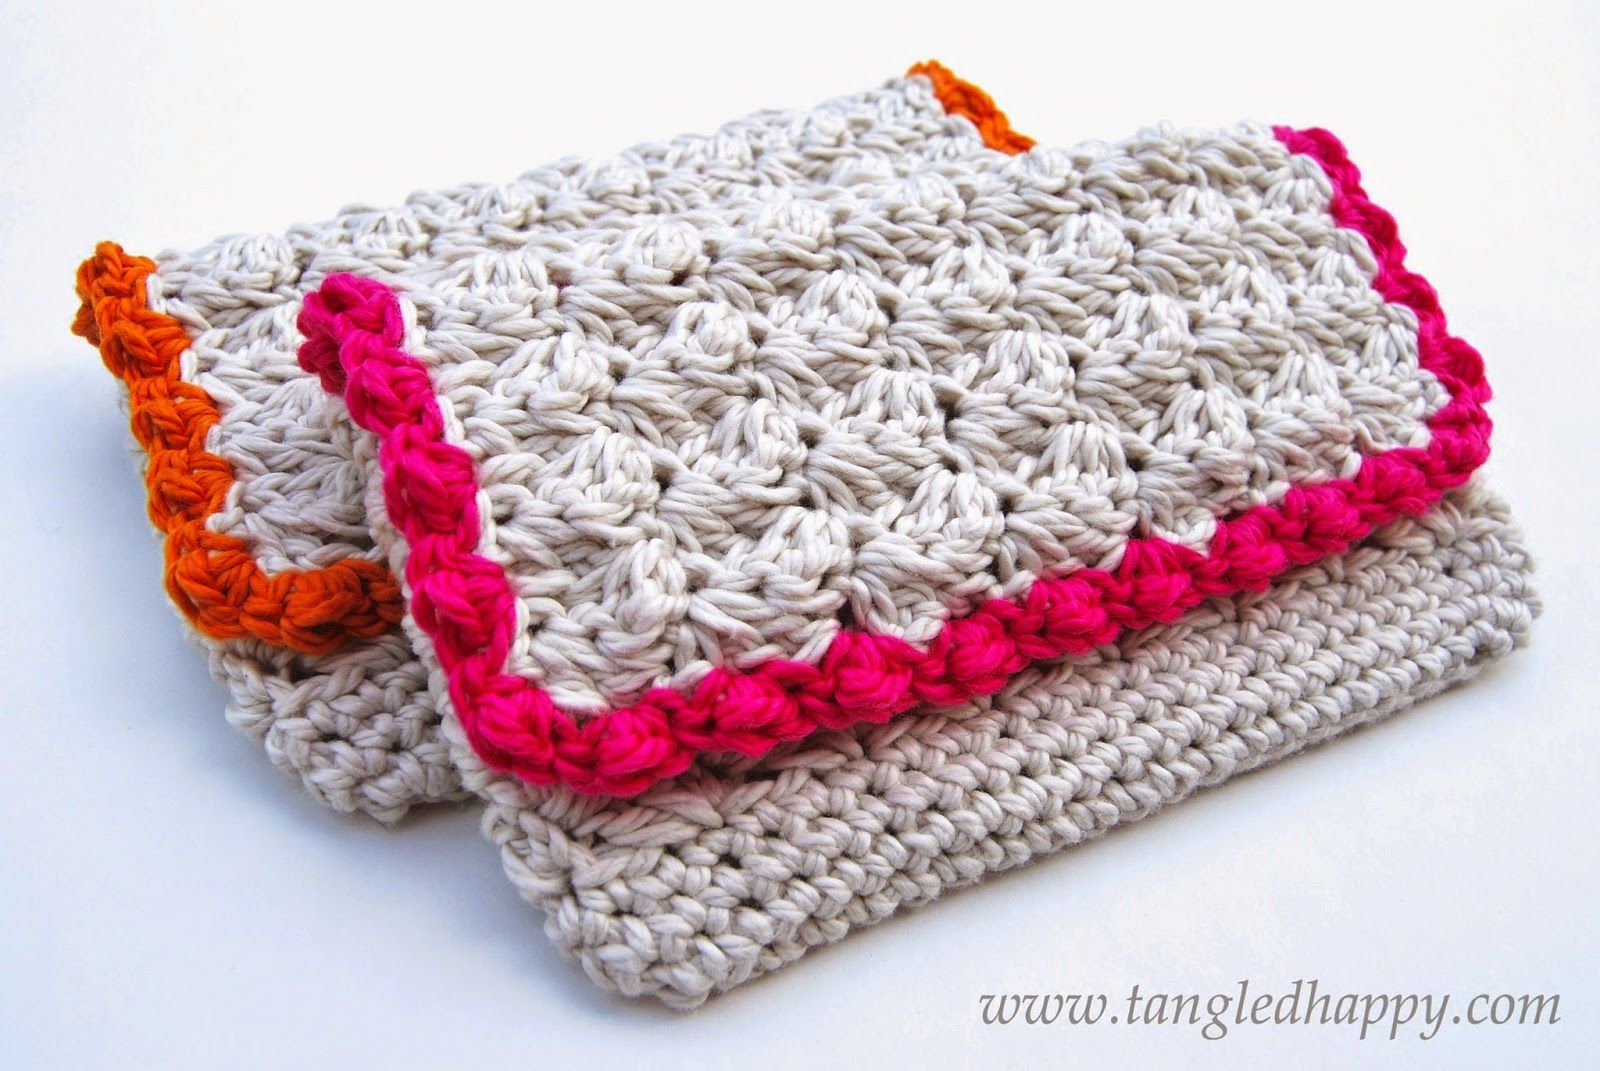 tangled happy: Free Patterns | Crochet/Purses, Wallets, Totes, and ...